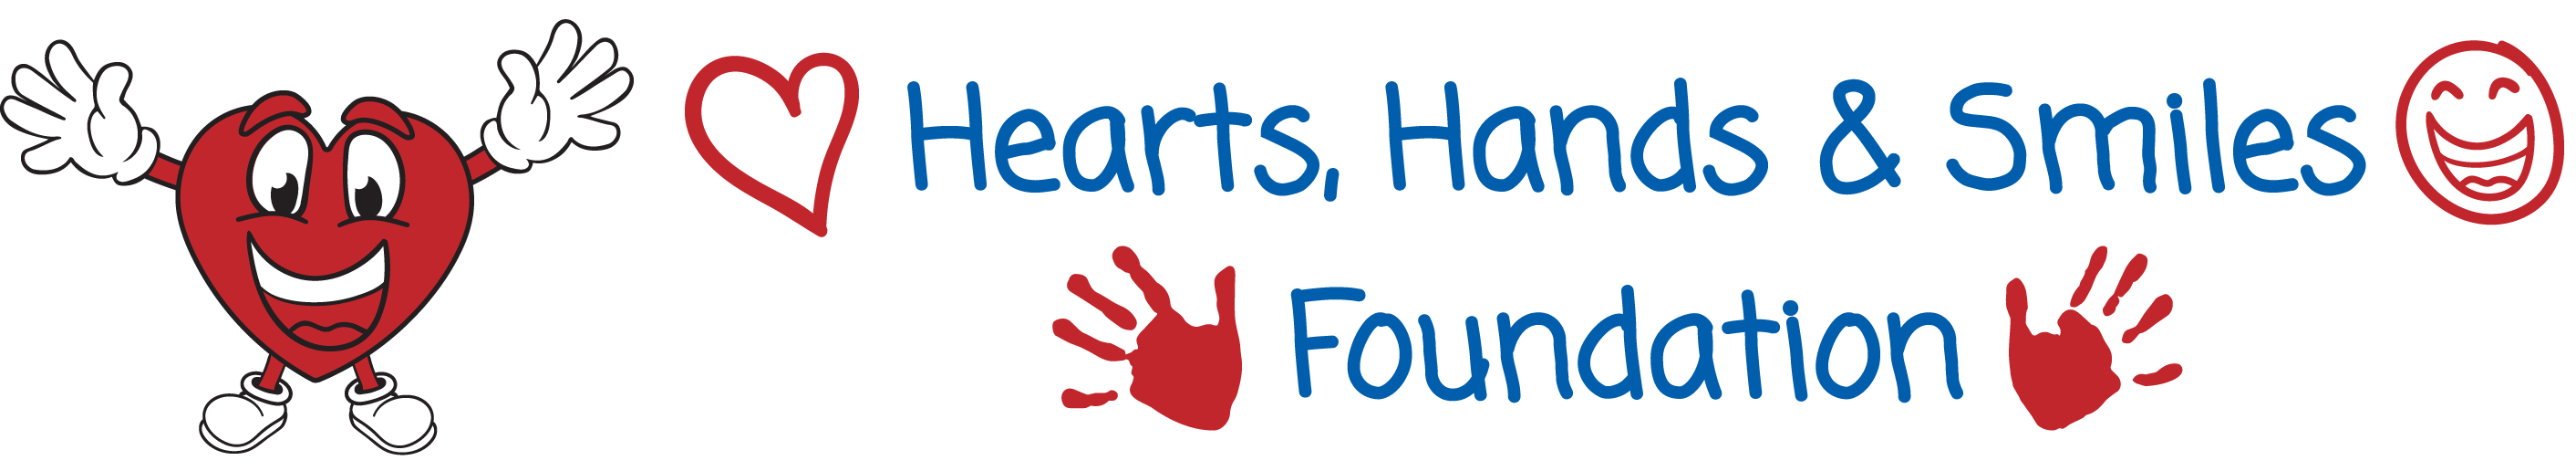 Hearts, Hands & Smiles Foundation